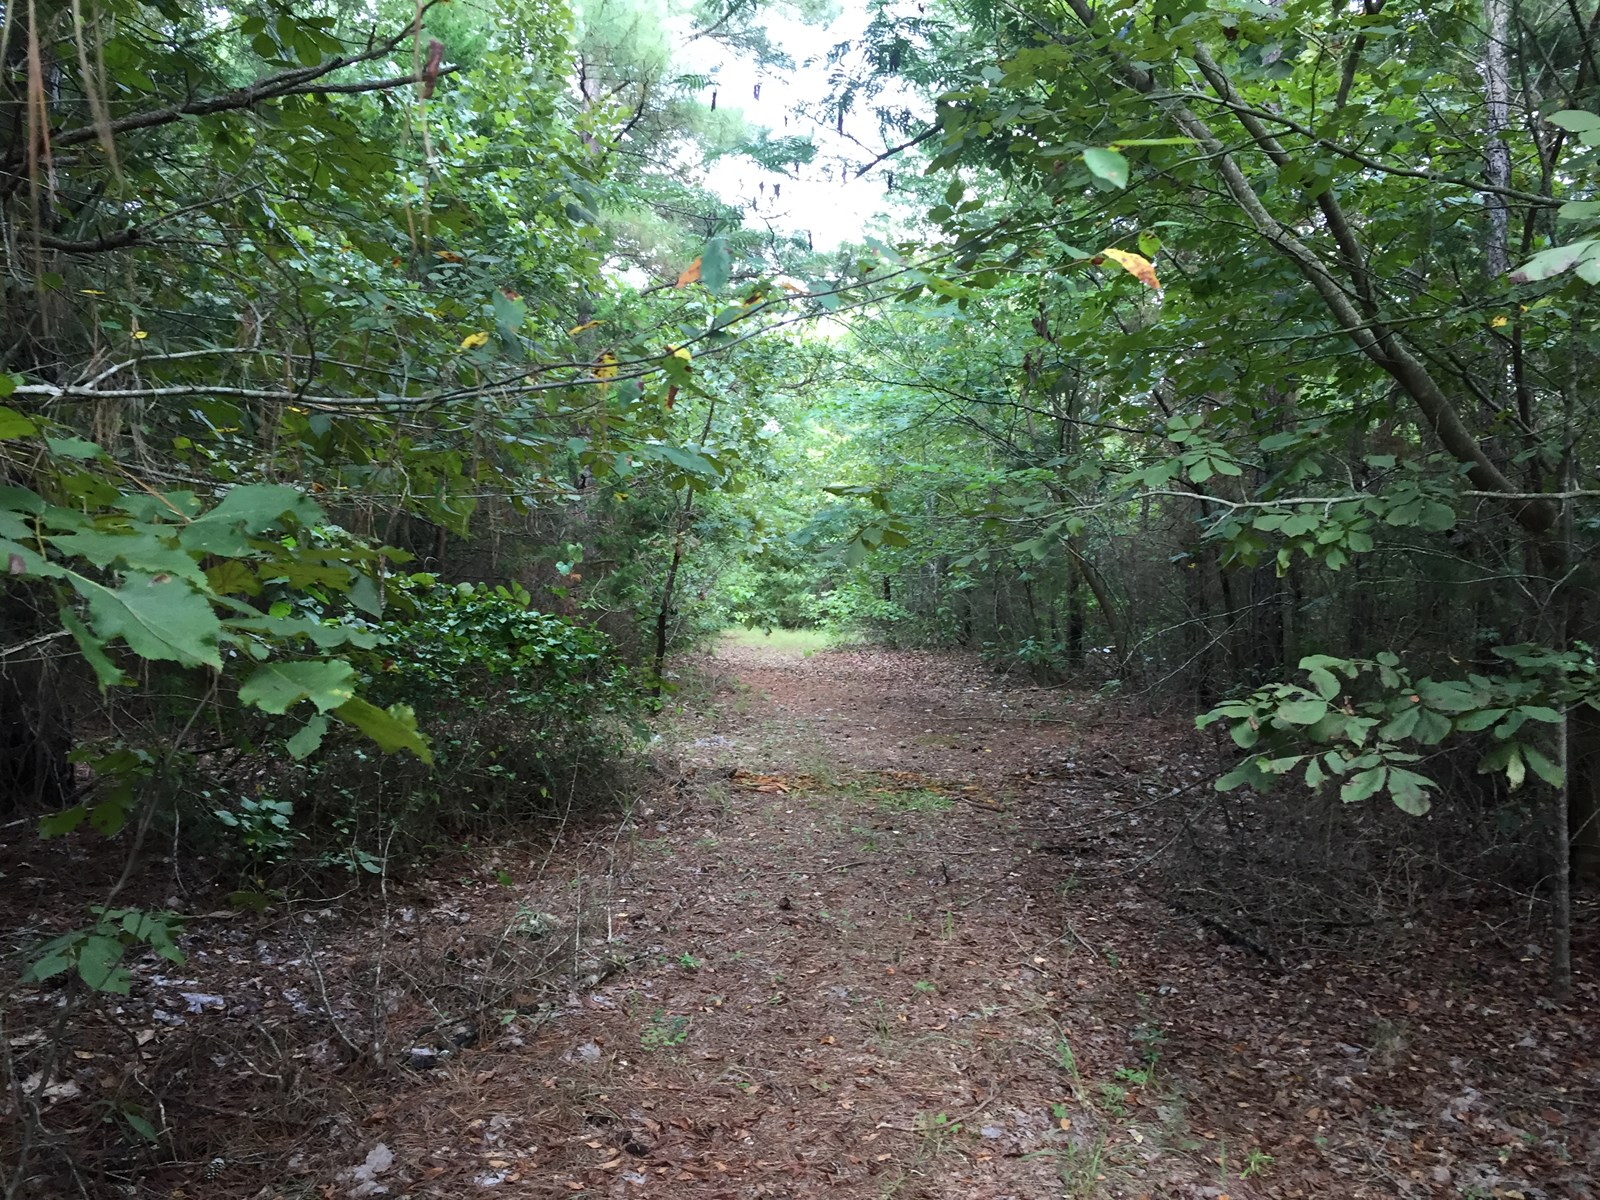 East Texas Land for Sale Avinger, TX 12+- acres